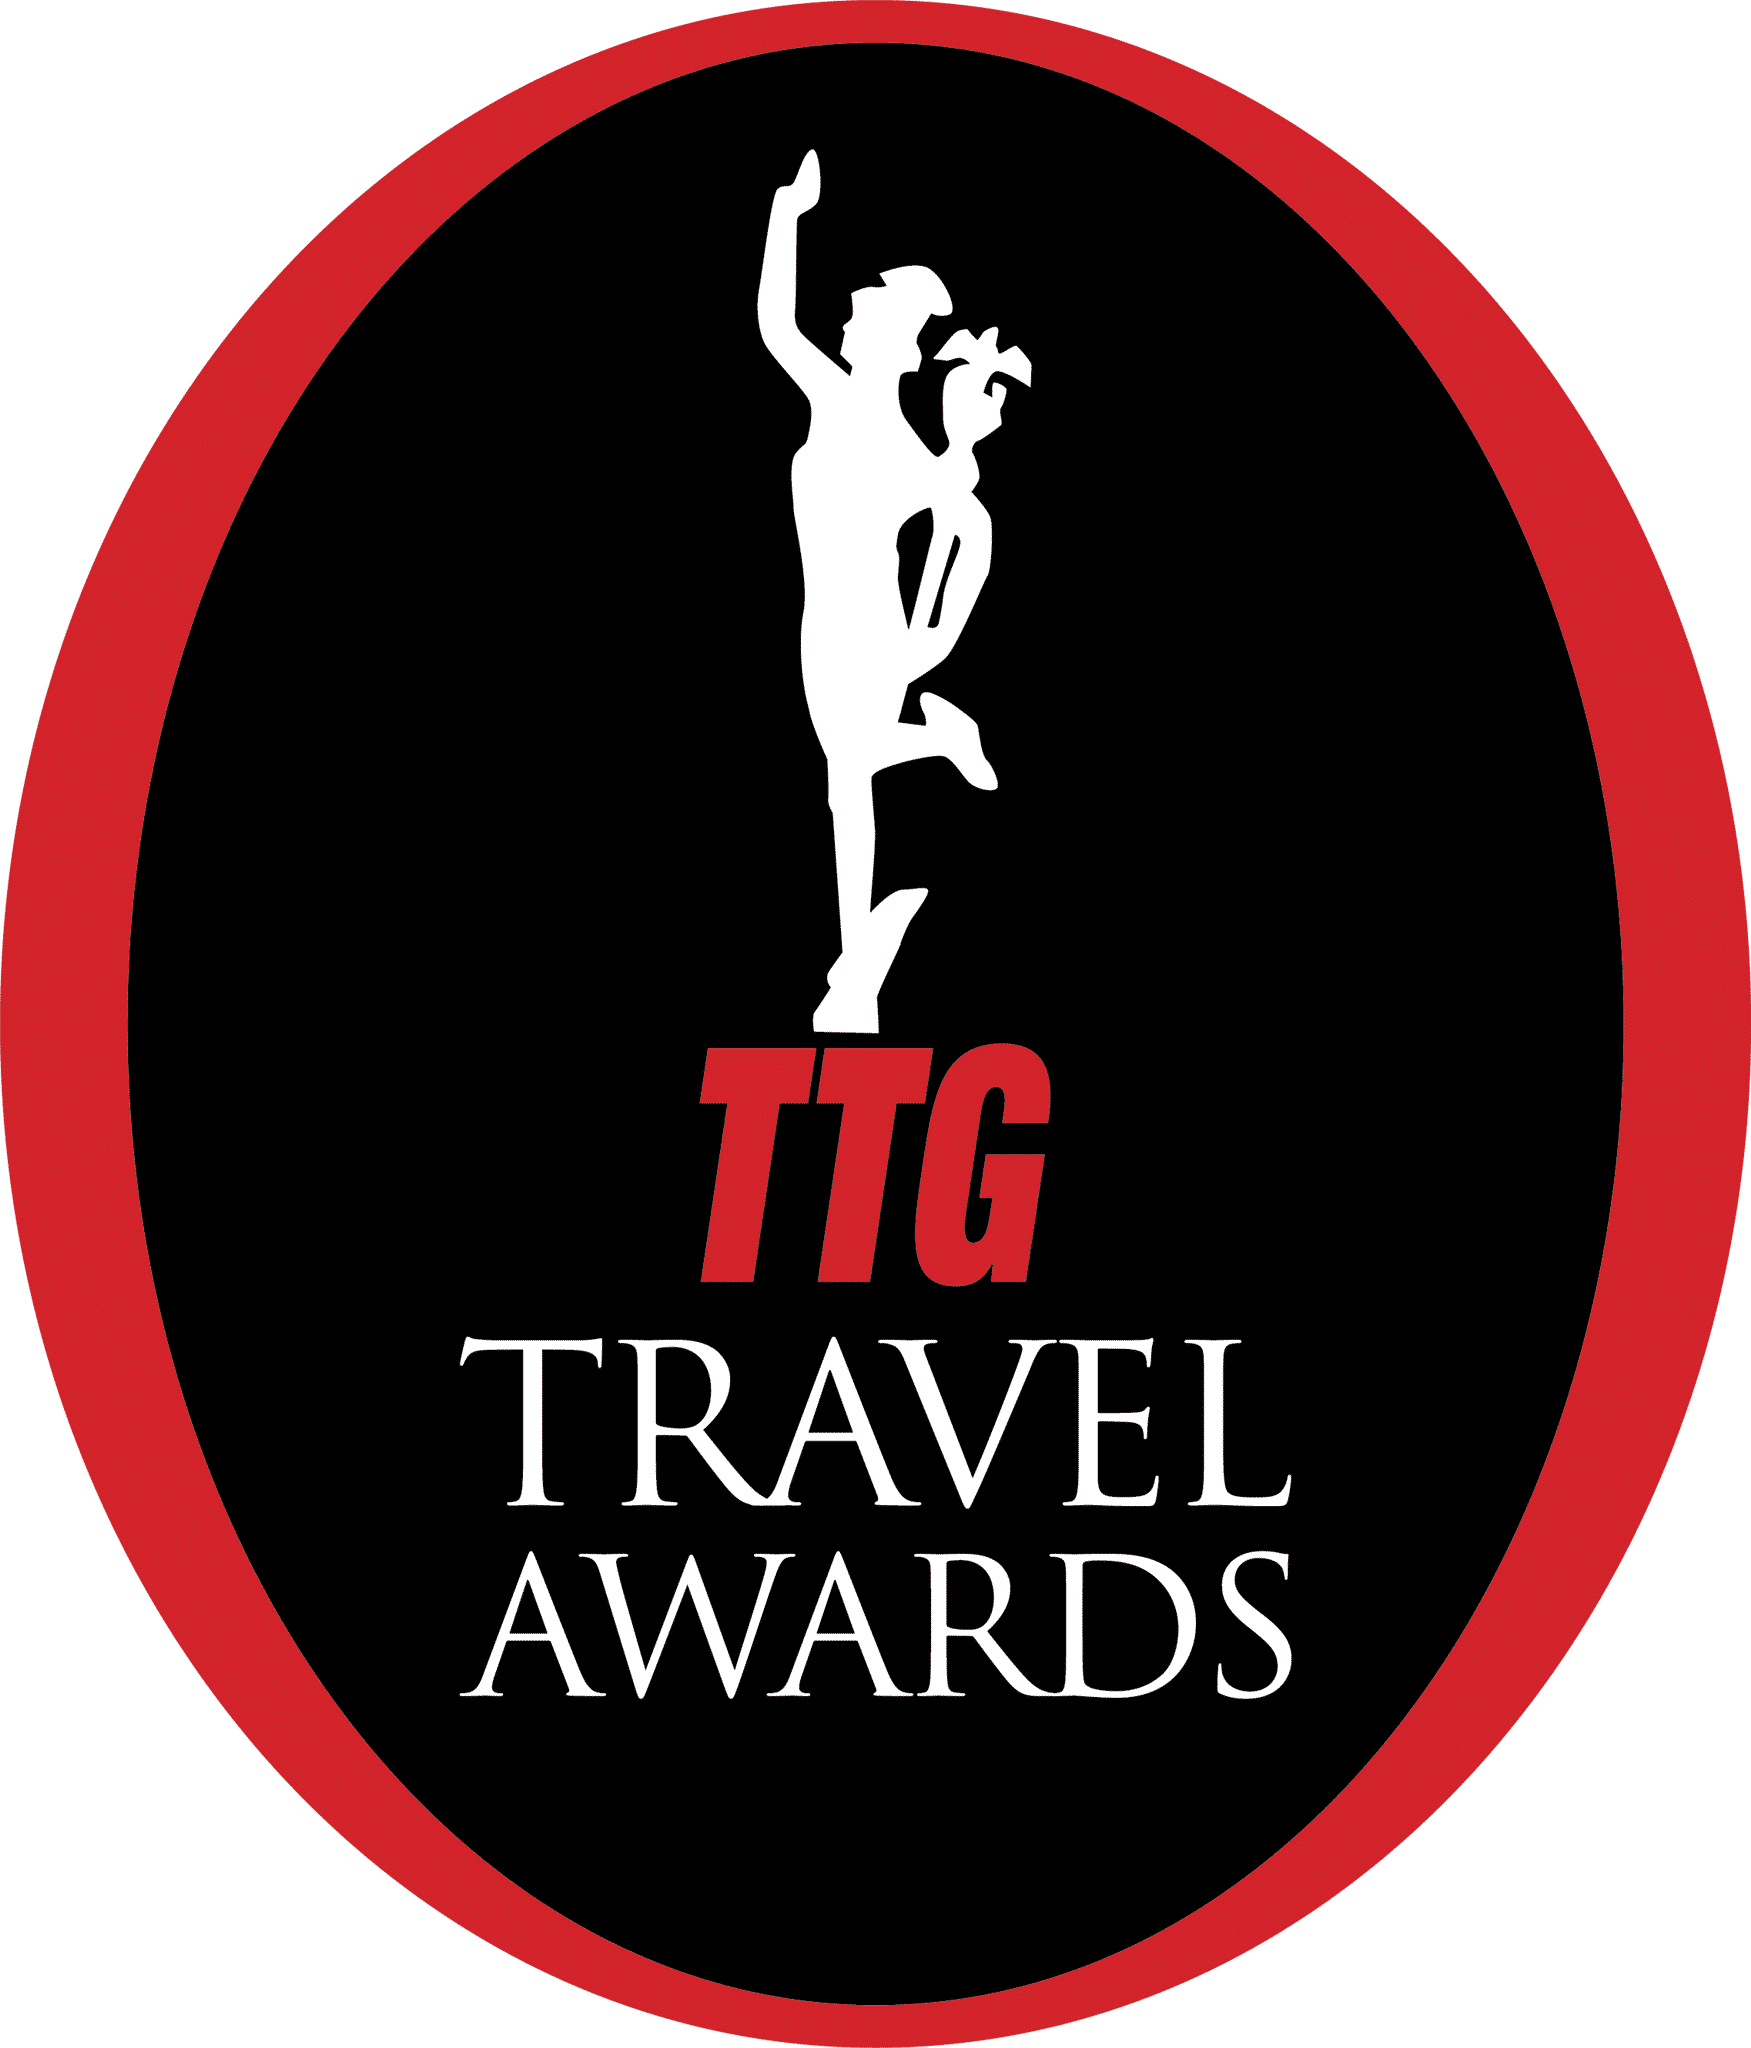 ttg-travel-award-logo